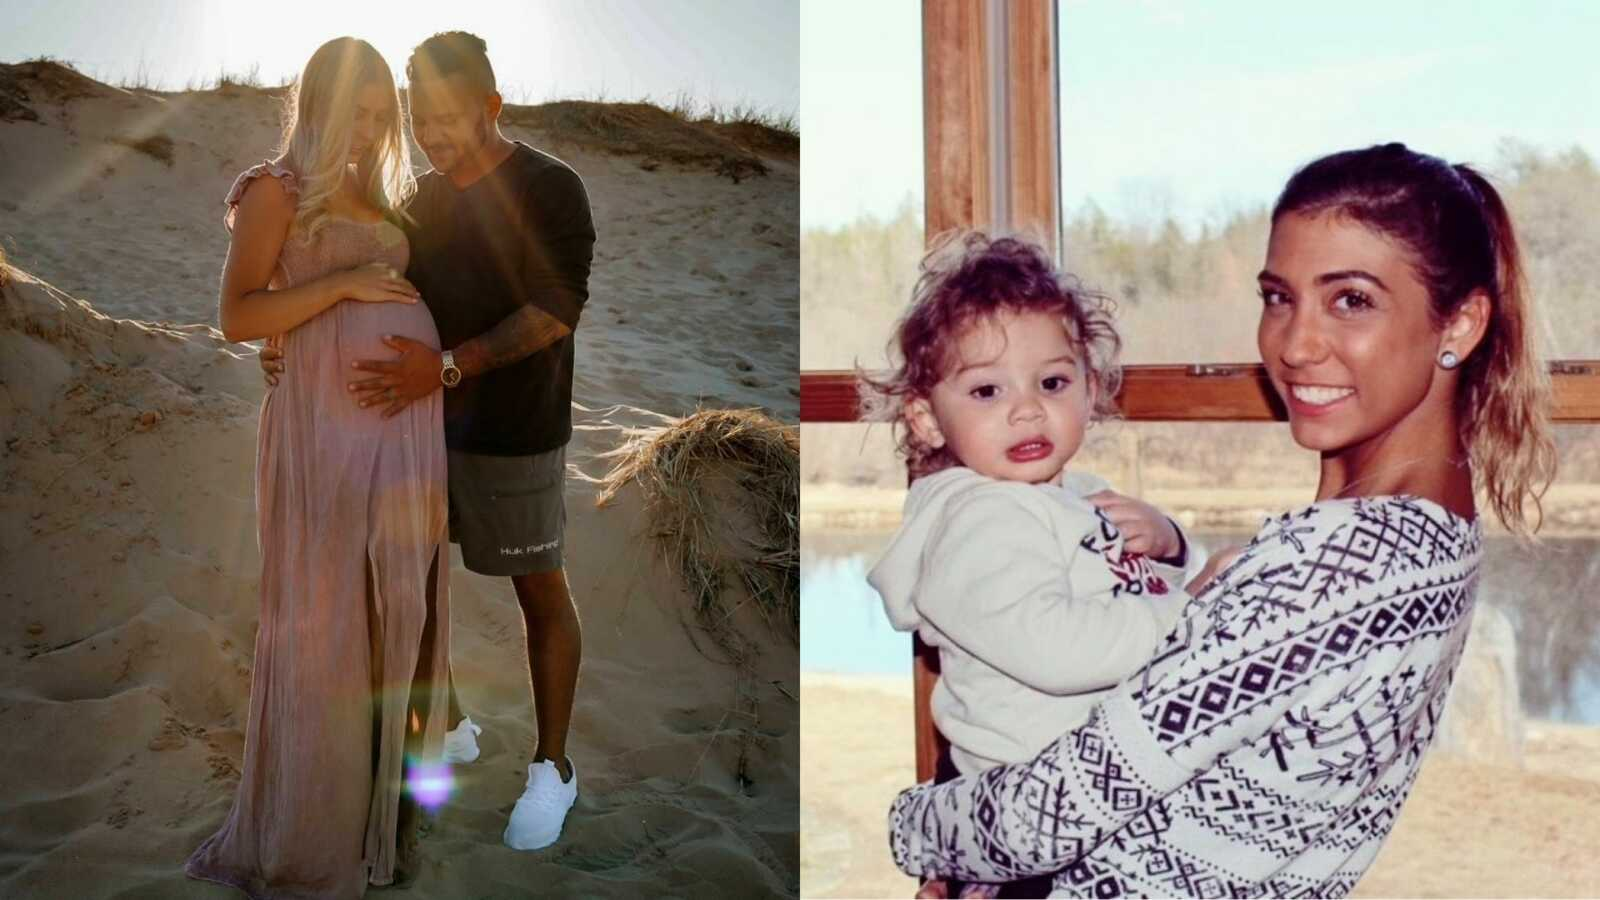 Young couple take a photo together with woman's growing pregnancy bump on the left and one the right the same woman holds her firstborn son